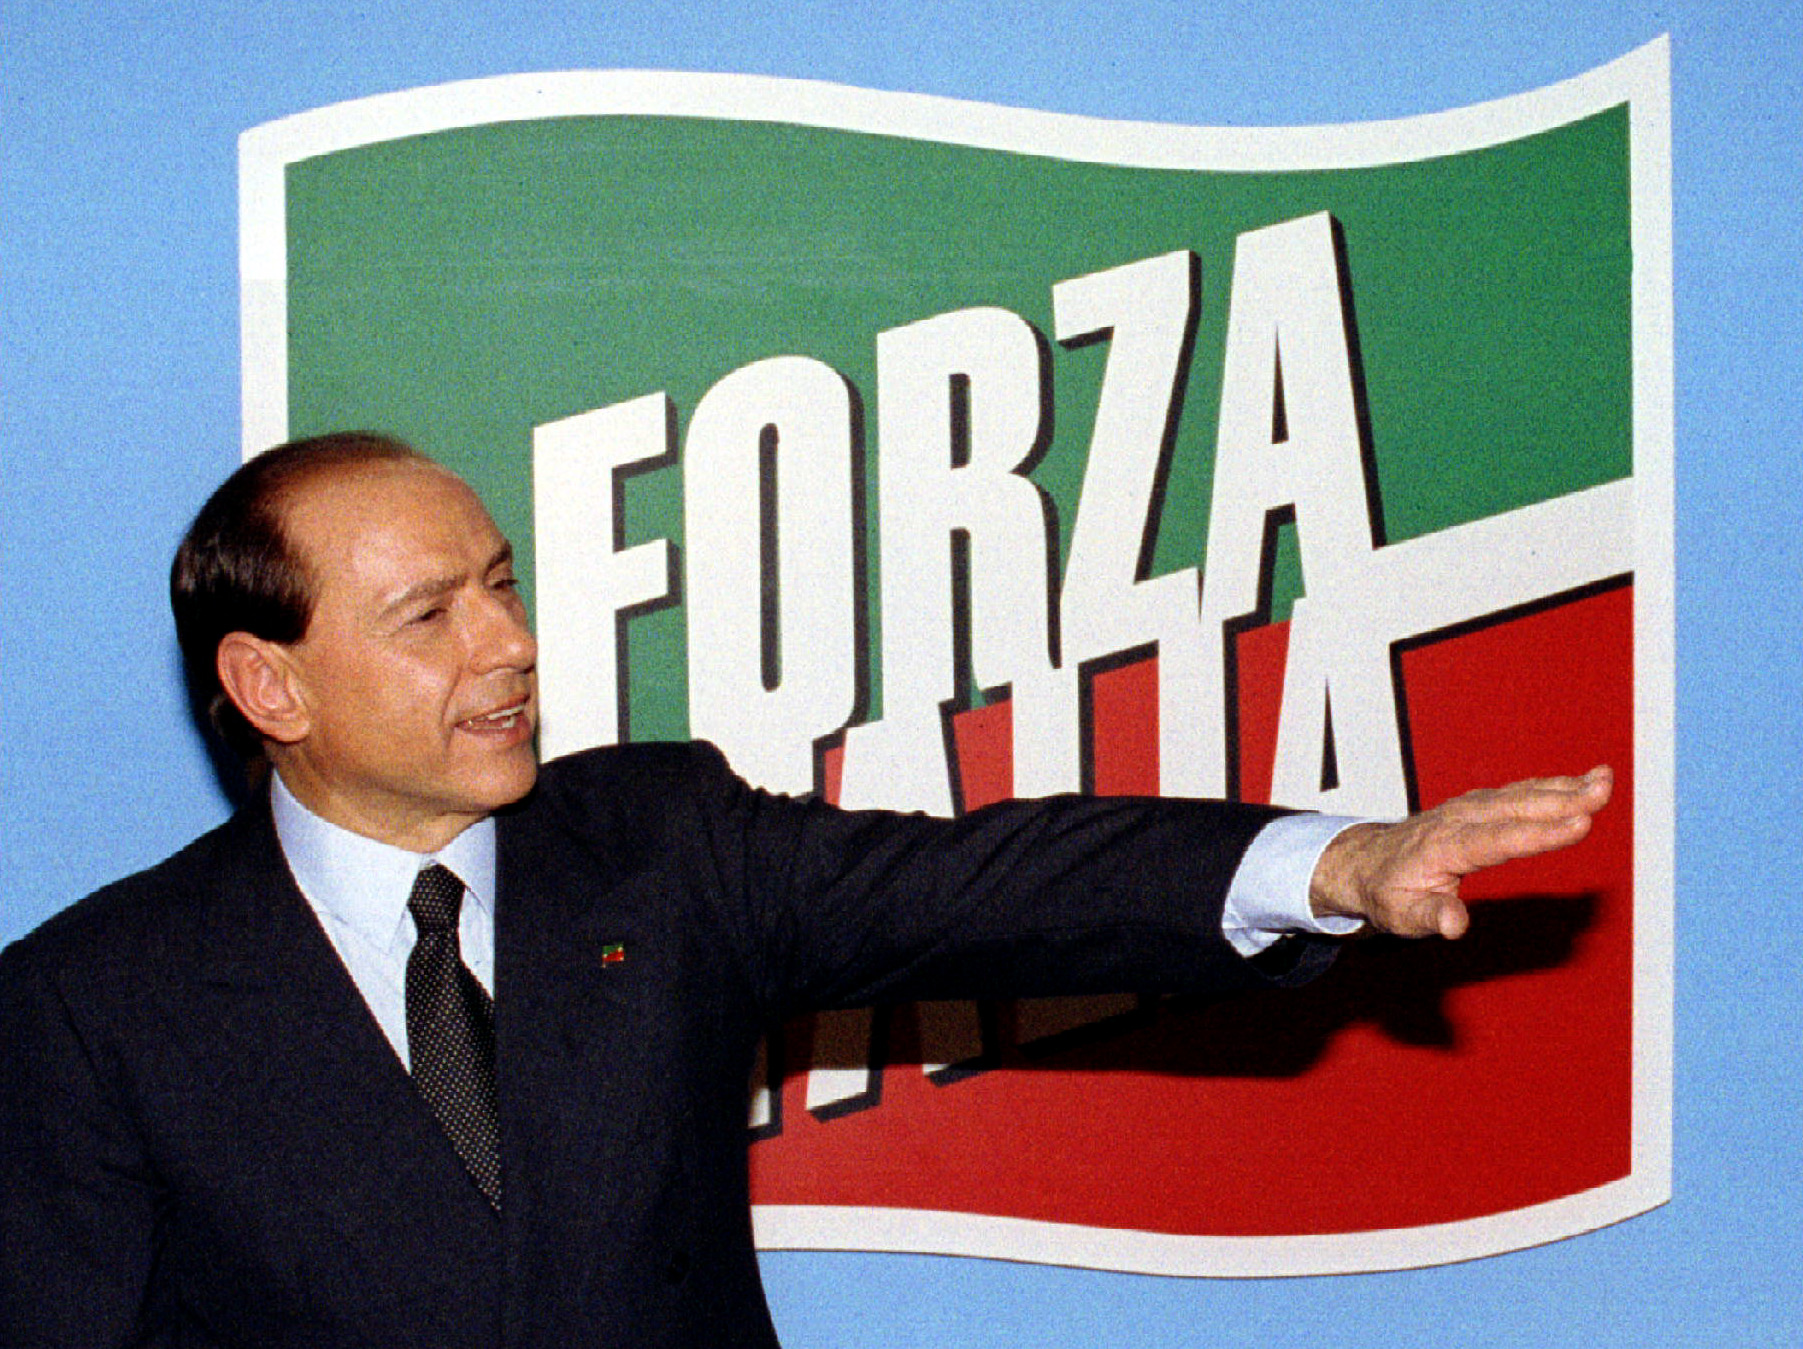 Silvio Berlusconi, leader of the right-wing Forza Italia (Go Italy) party and head of the Freedom Alliance gestures at his party's election headquarters after initial exit polls projected his party would win an absolute majority for Italy's 630-member chamber of deputies March 29